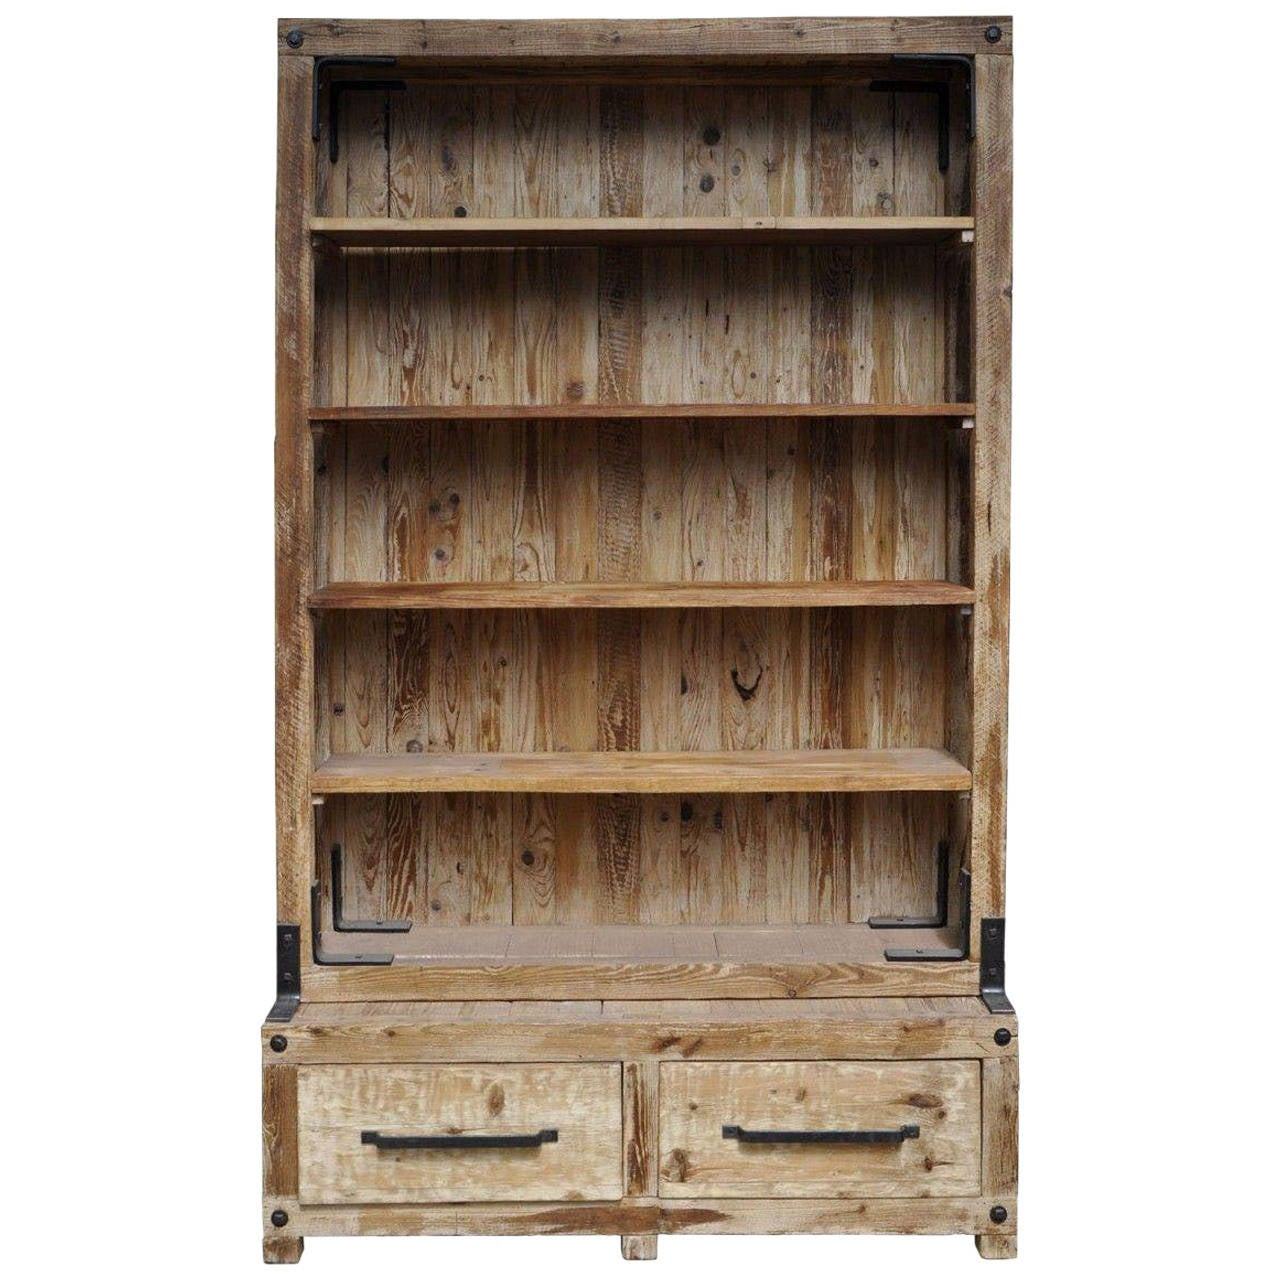 Superb img of Antique Wooden Shelf With Bottom Drawers at 1stdibs with #8C693F color and 1280x1280 pixels